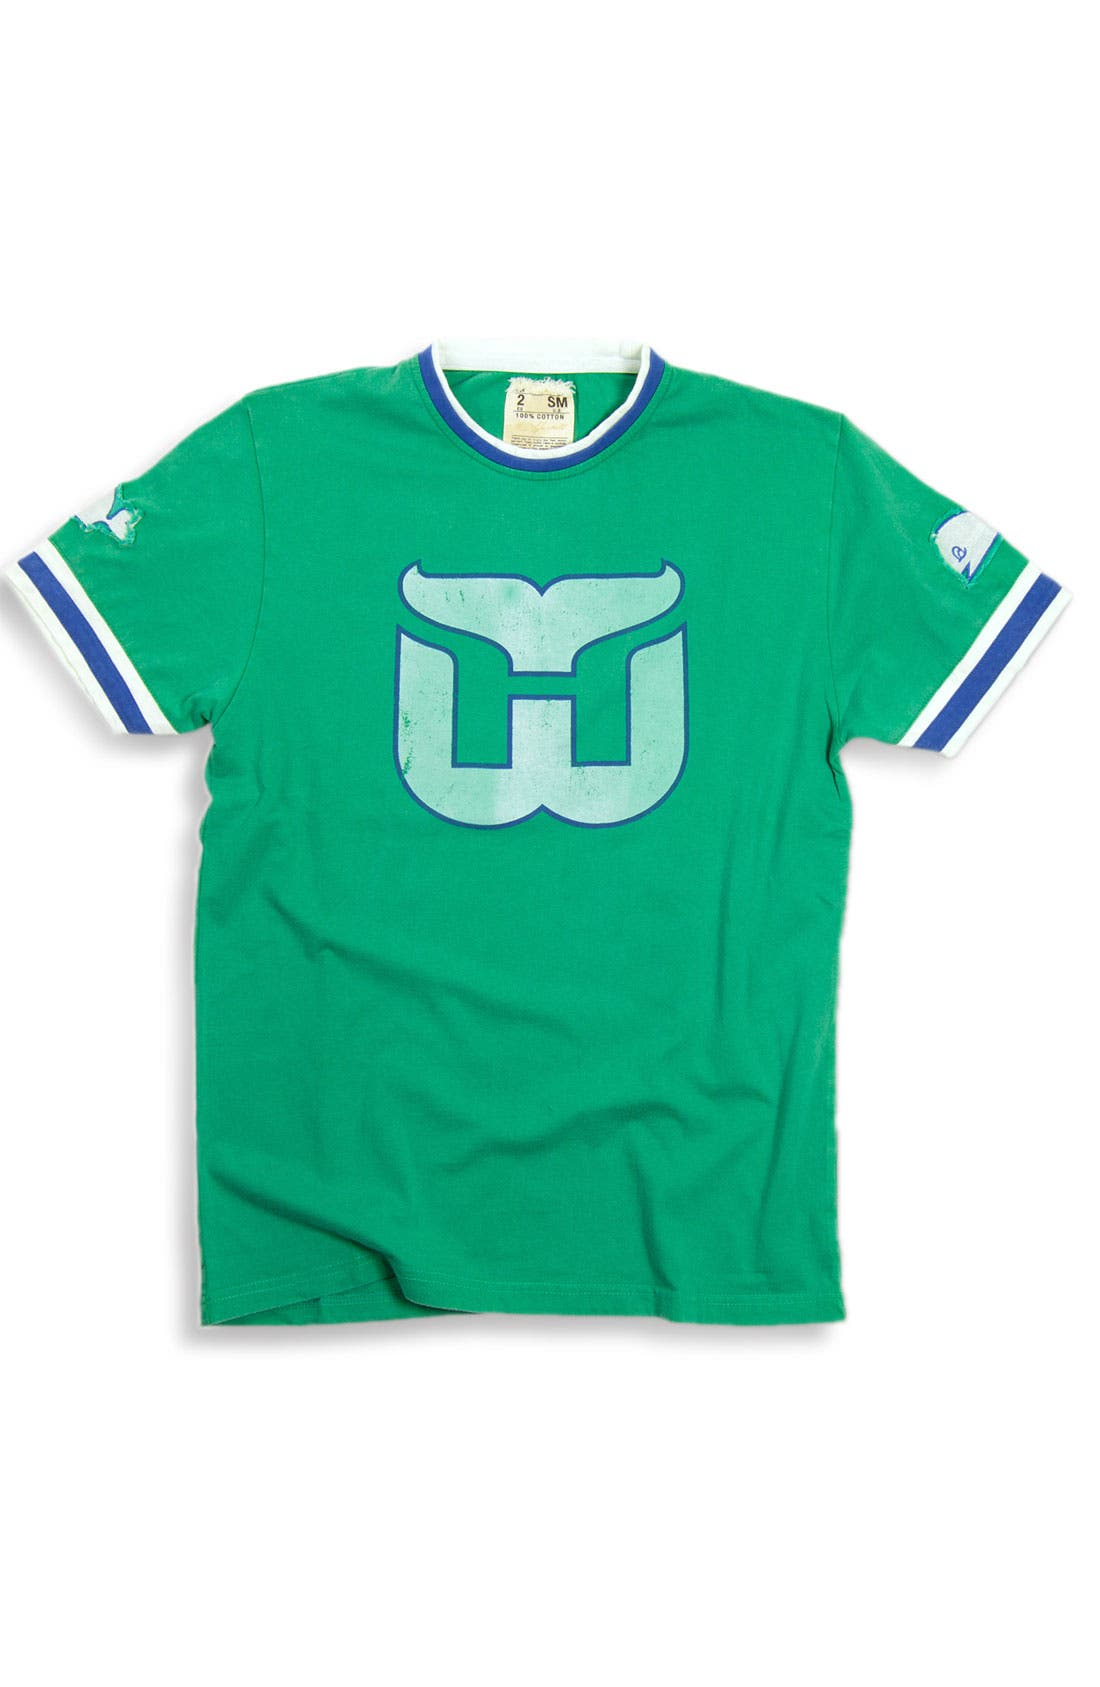 Alternate Image 1 Selected - Red Jacket 'Hartford Whalers' Trim Fit Crewneck Ringer T-Shirt (Men)